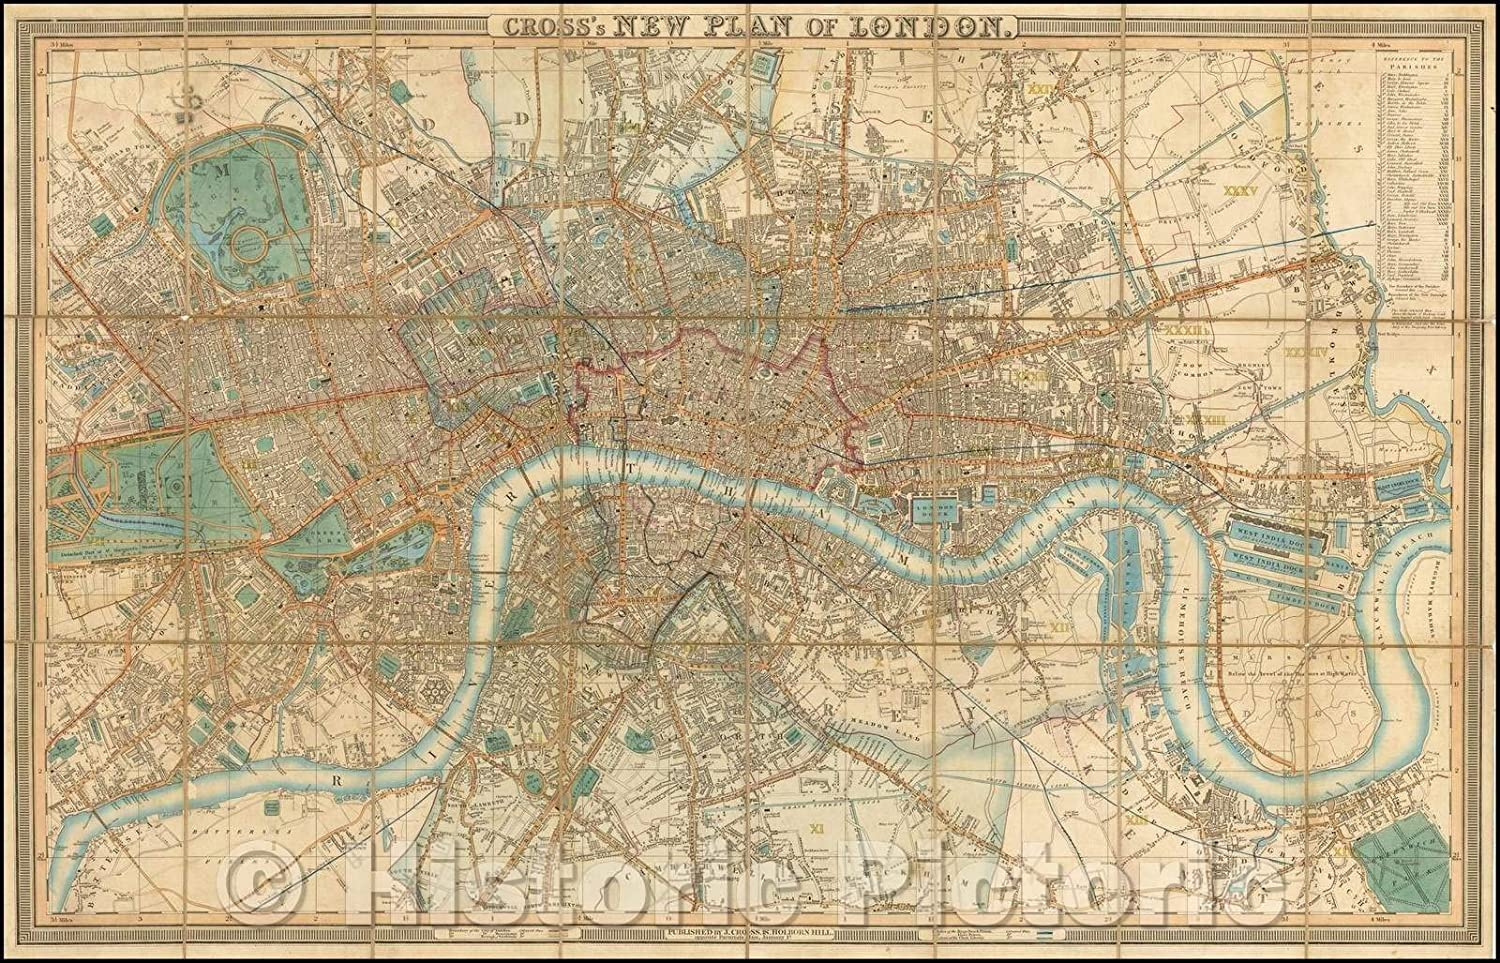 Philip/'s New Plan of London 1873 reproduction old map